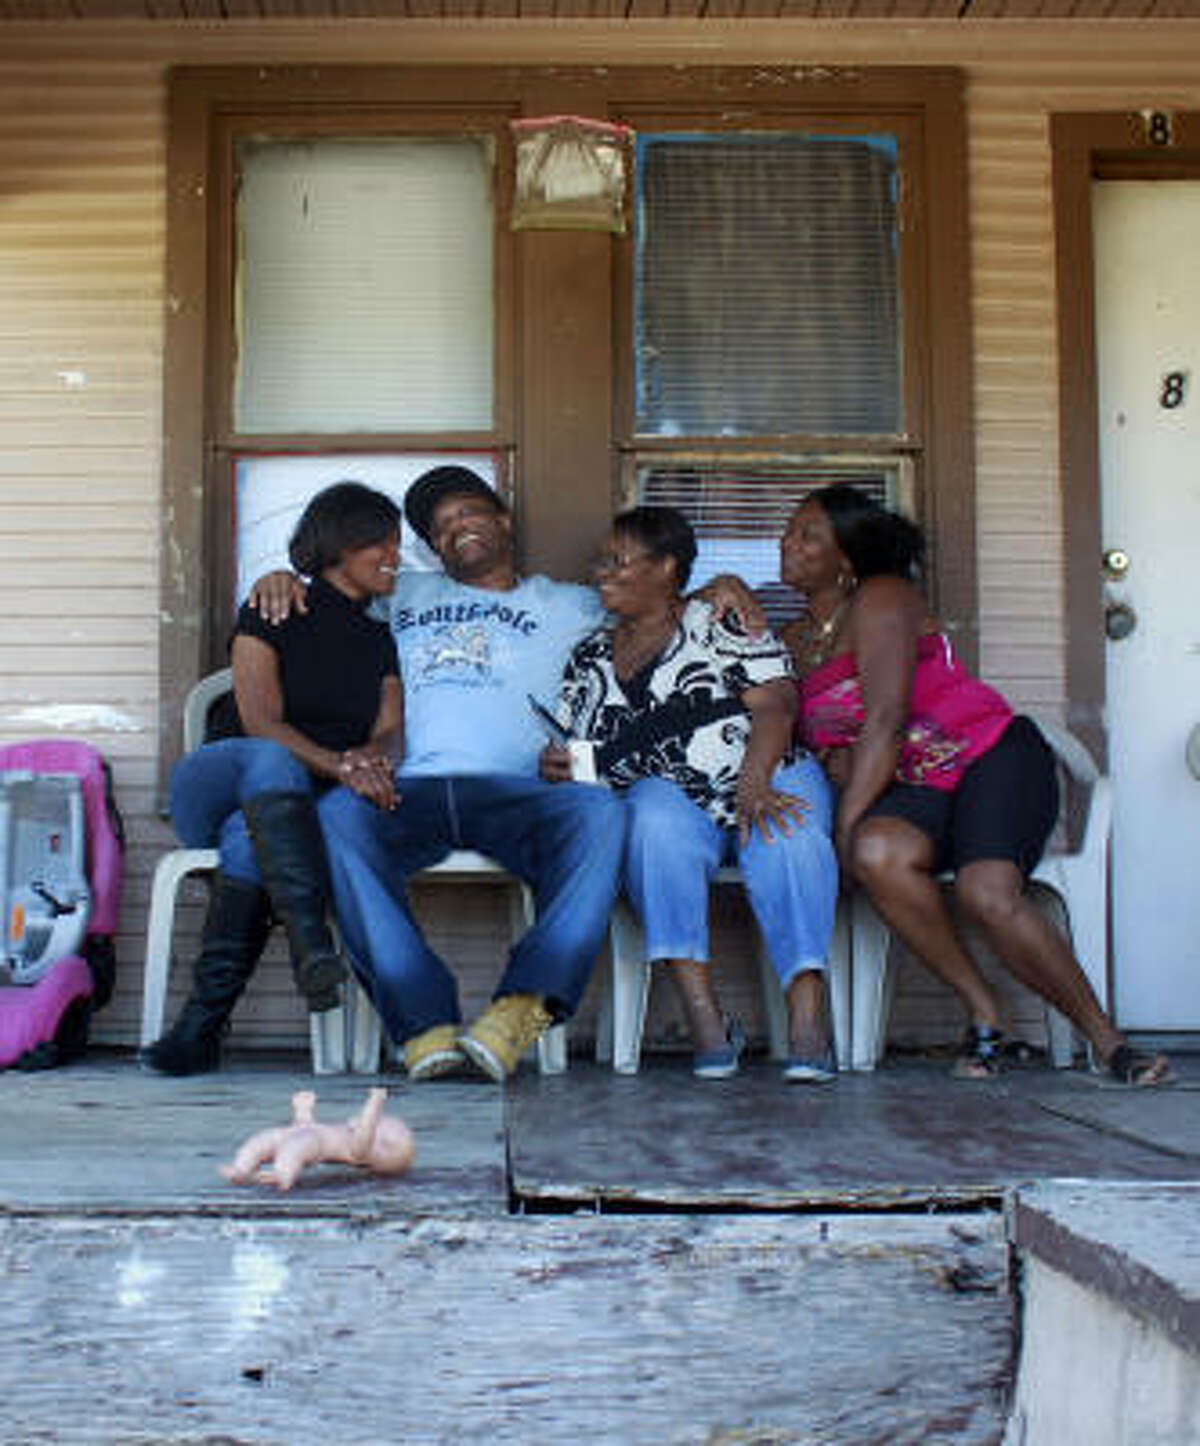 Anthony Graves joins sister Demetria Williams, left, mother Doris Curry and sister Dietrich Lewis in Brenham on Saturday for his first family barbecue in 18 years.